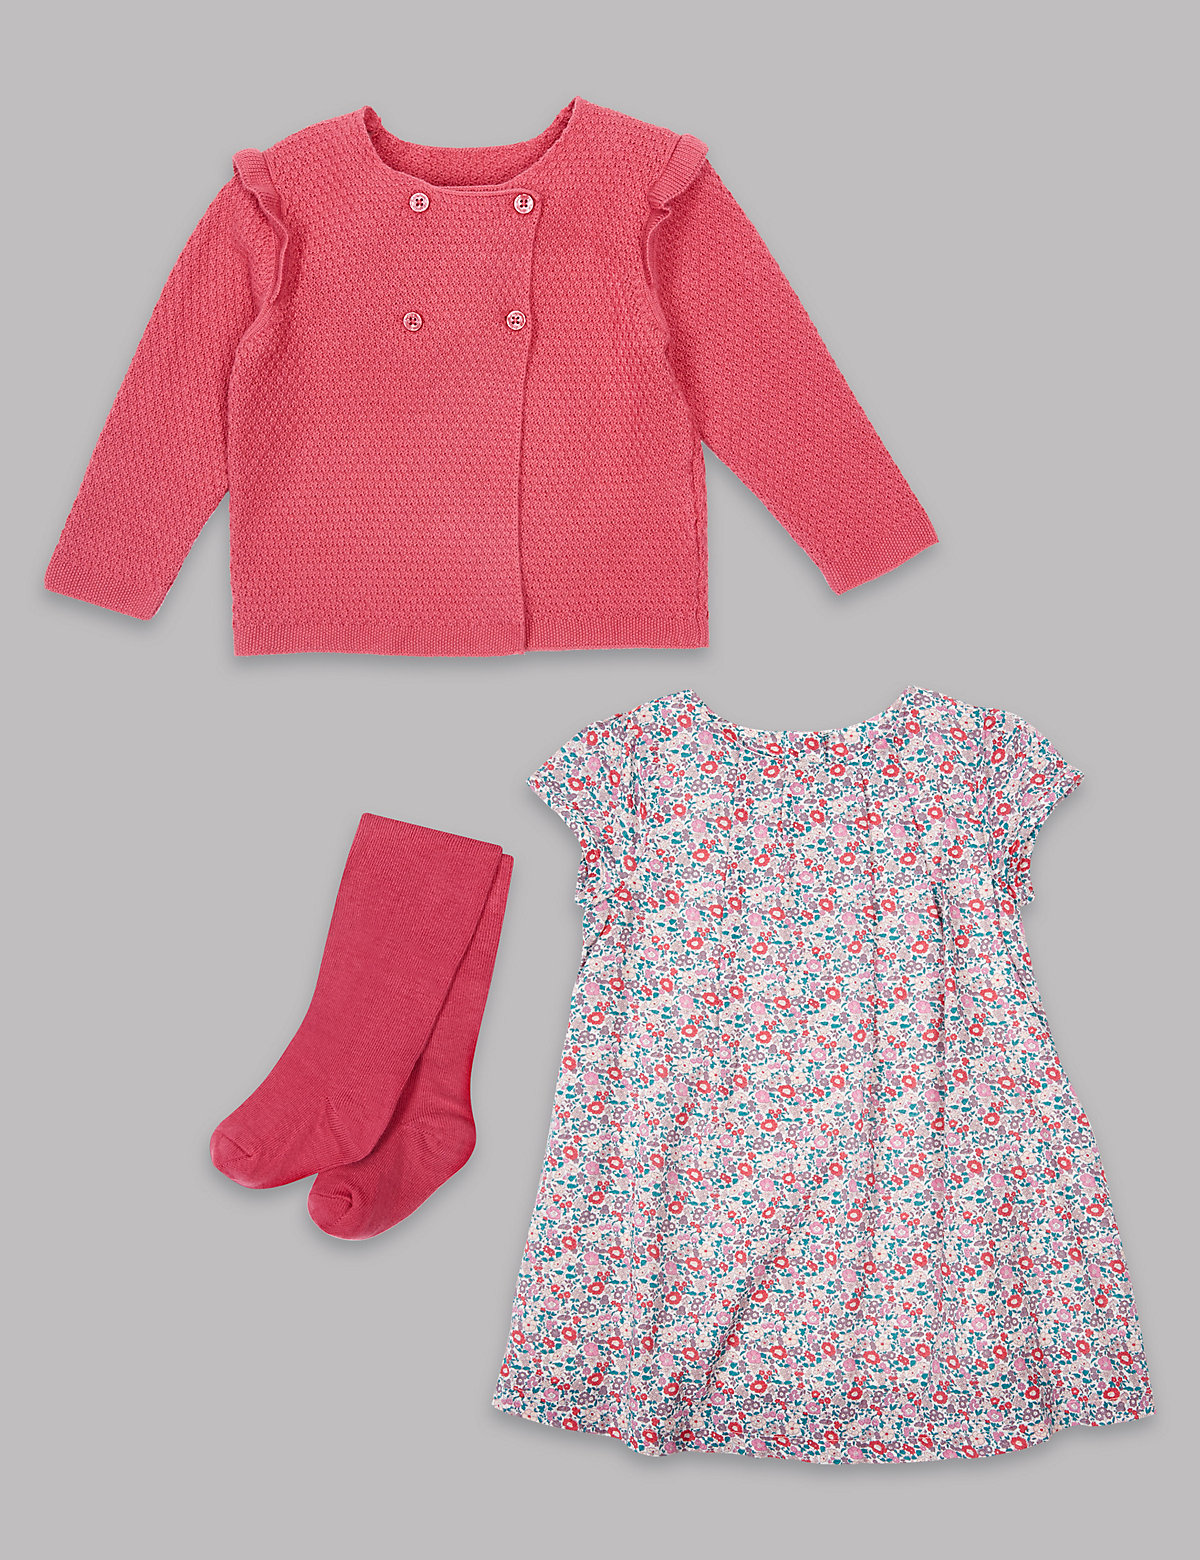 Autograph 3 Piece Cardigan & Dress with Tights Outfit